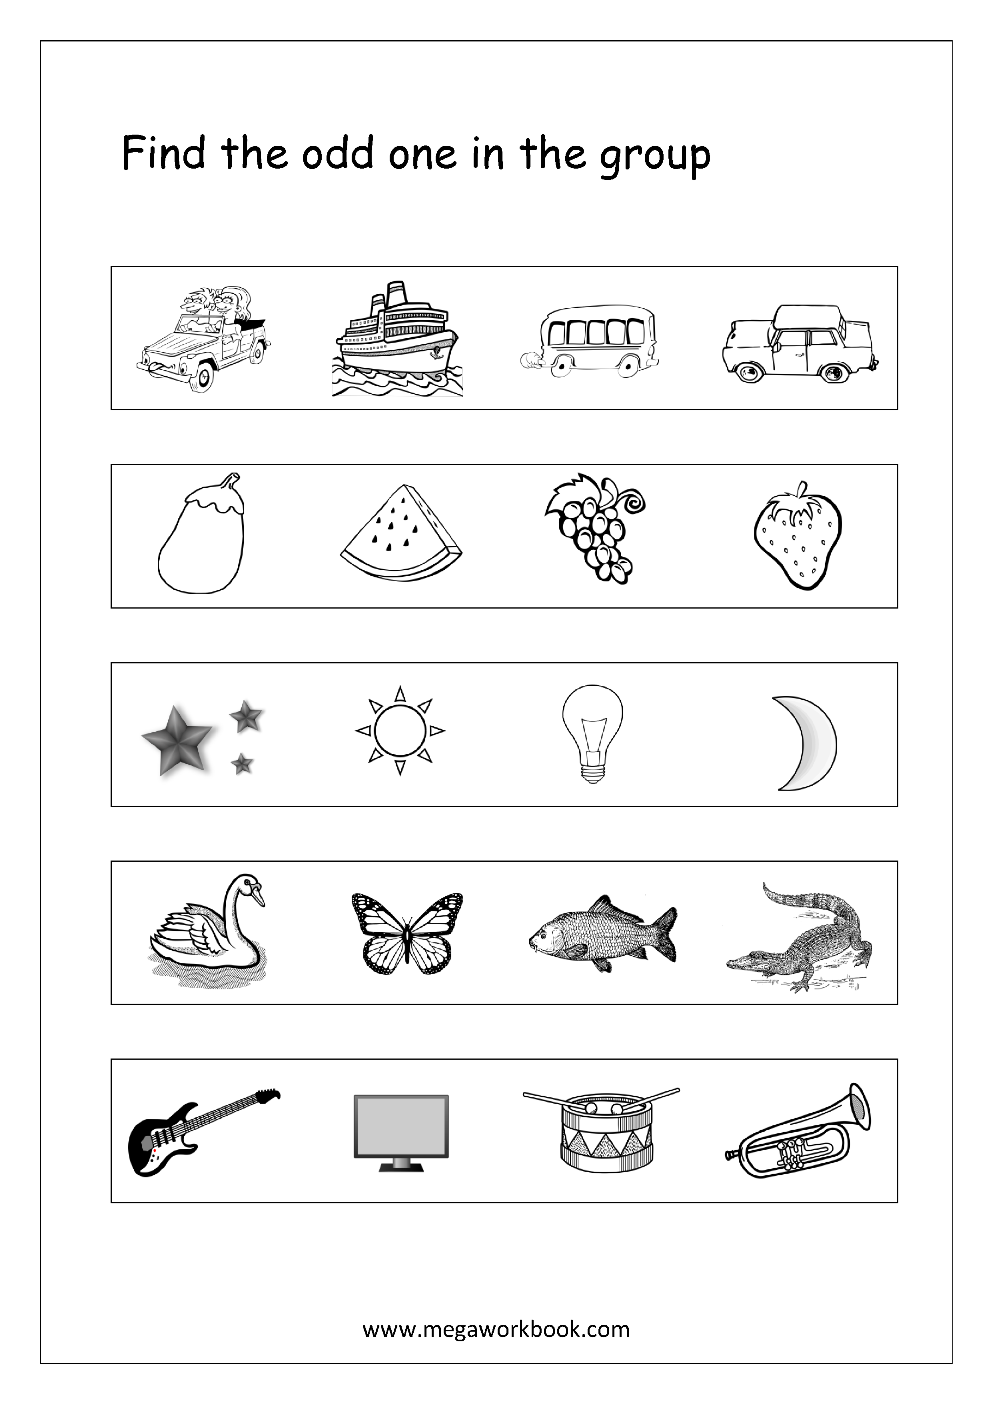 Free Printable Odd One Out Worksheets